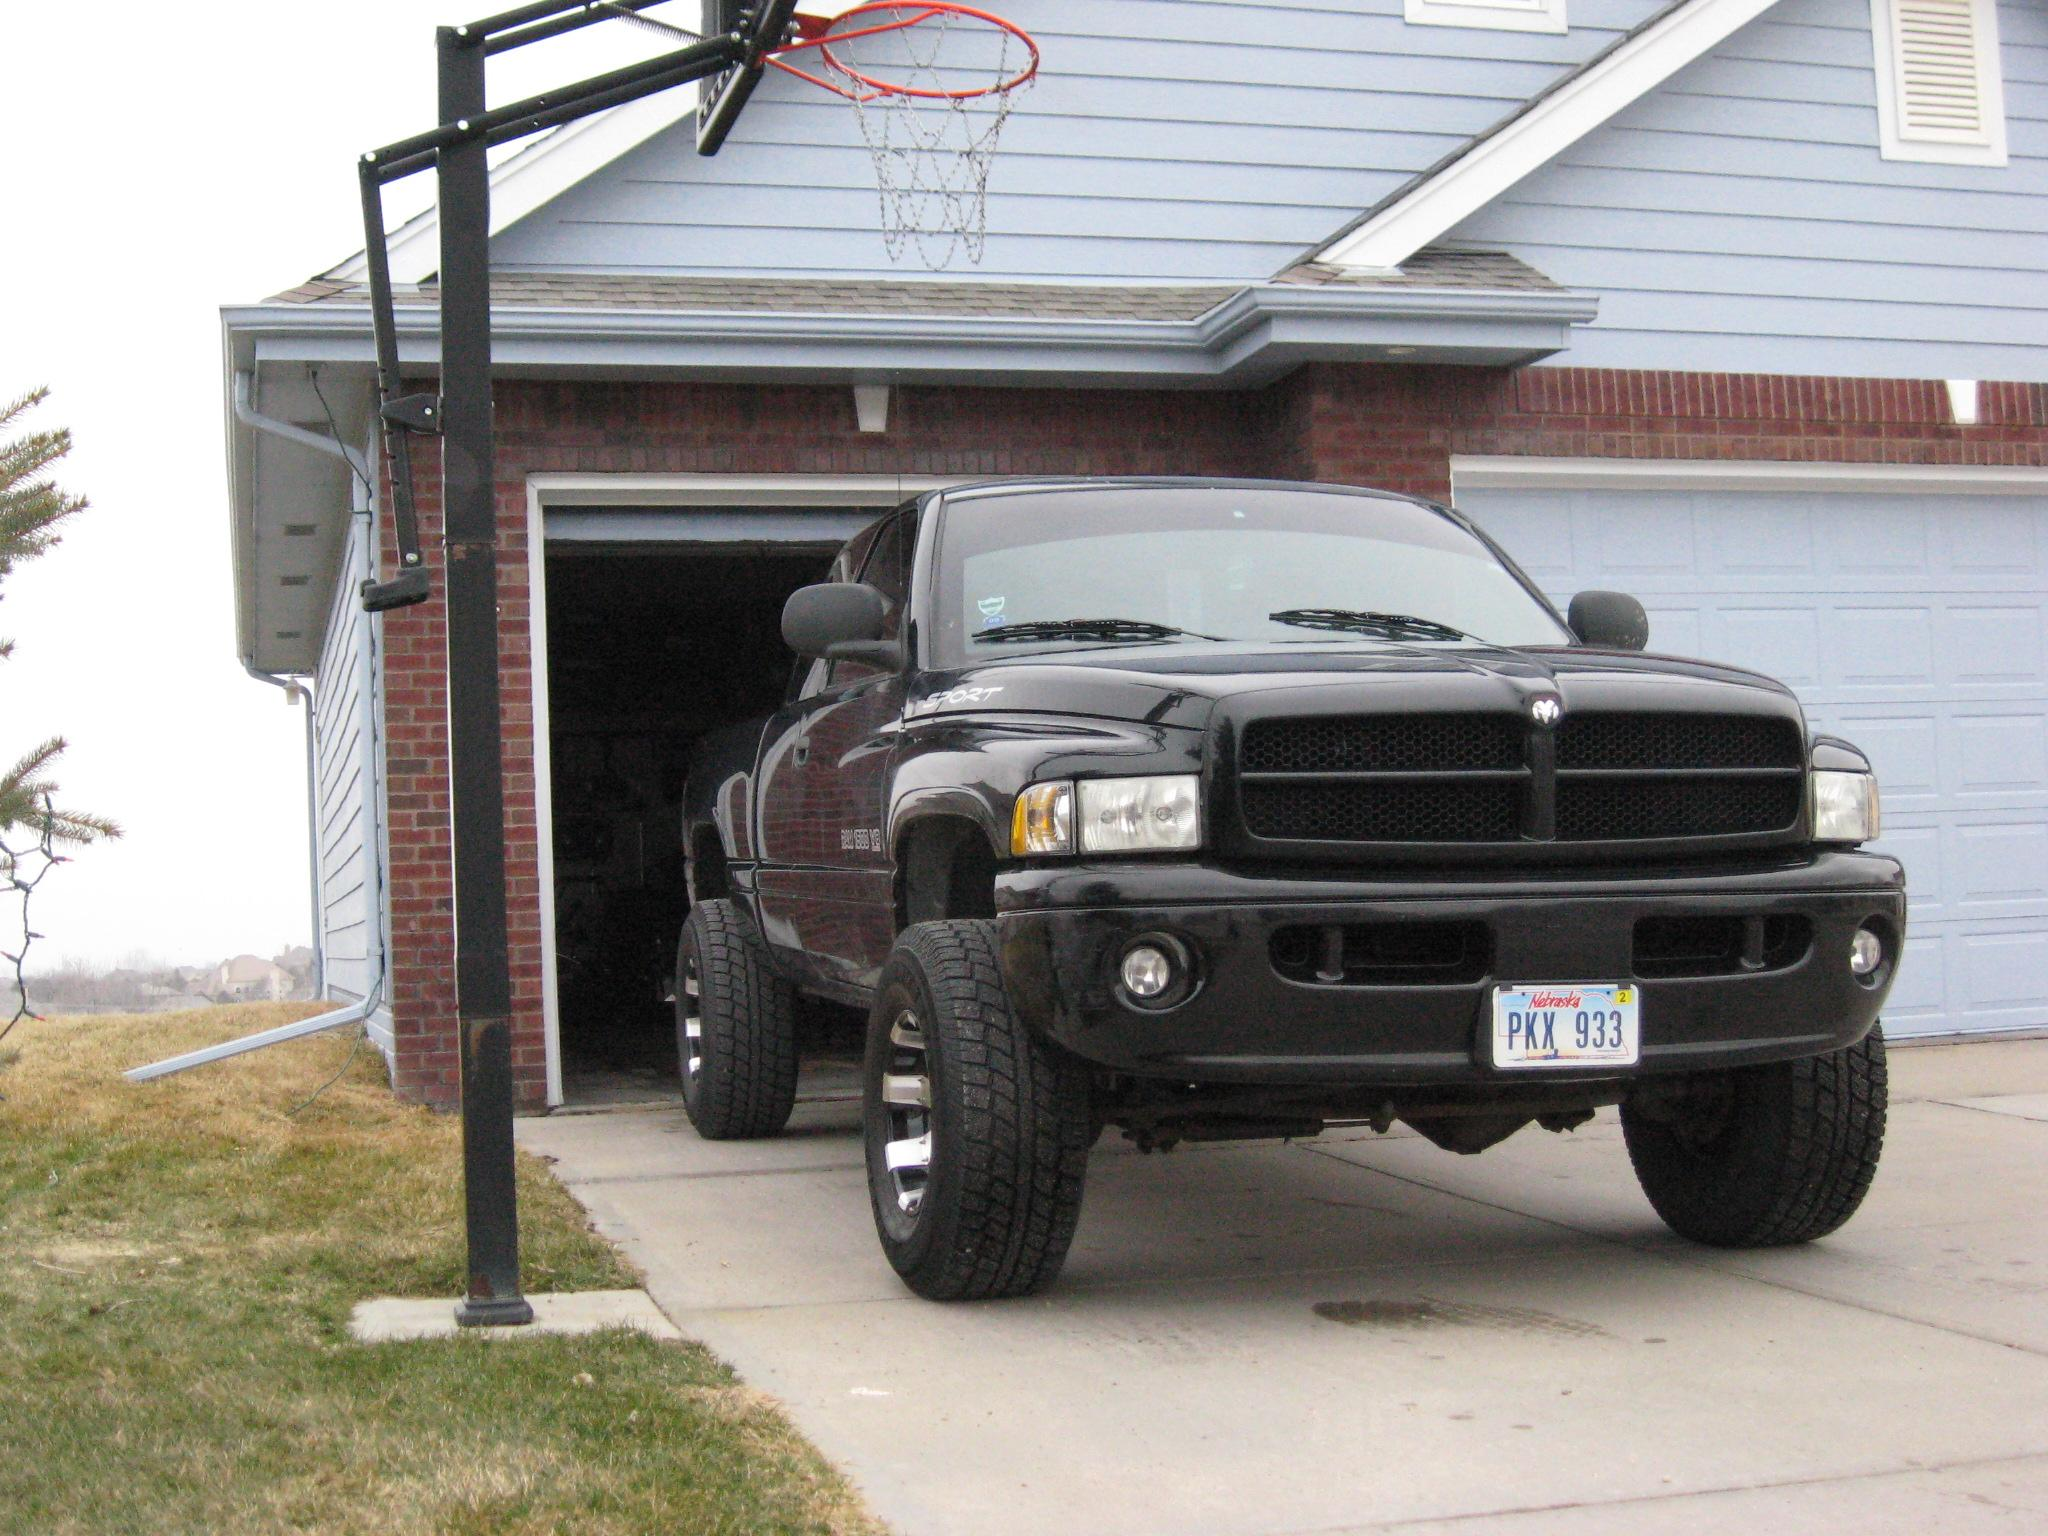 Ridinhigh420's 2000 Dodge Ram 1500 Quad Cab